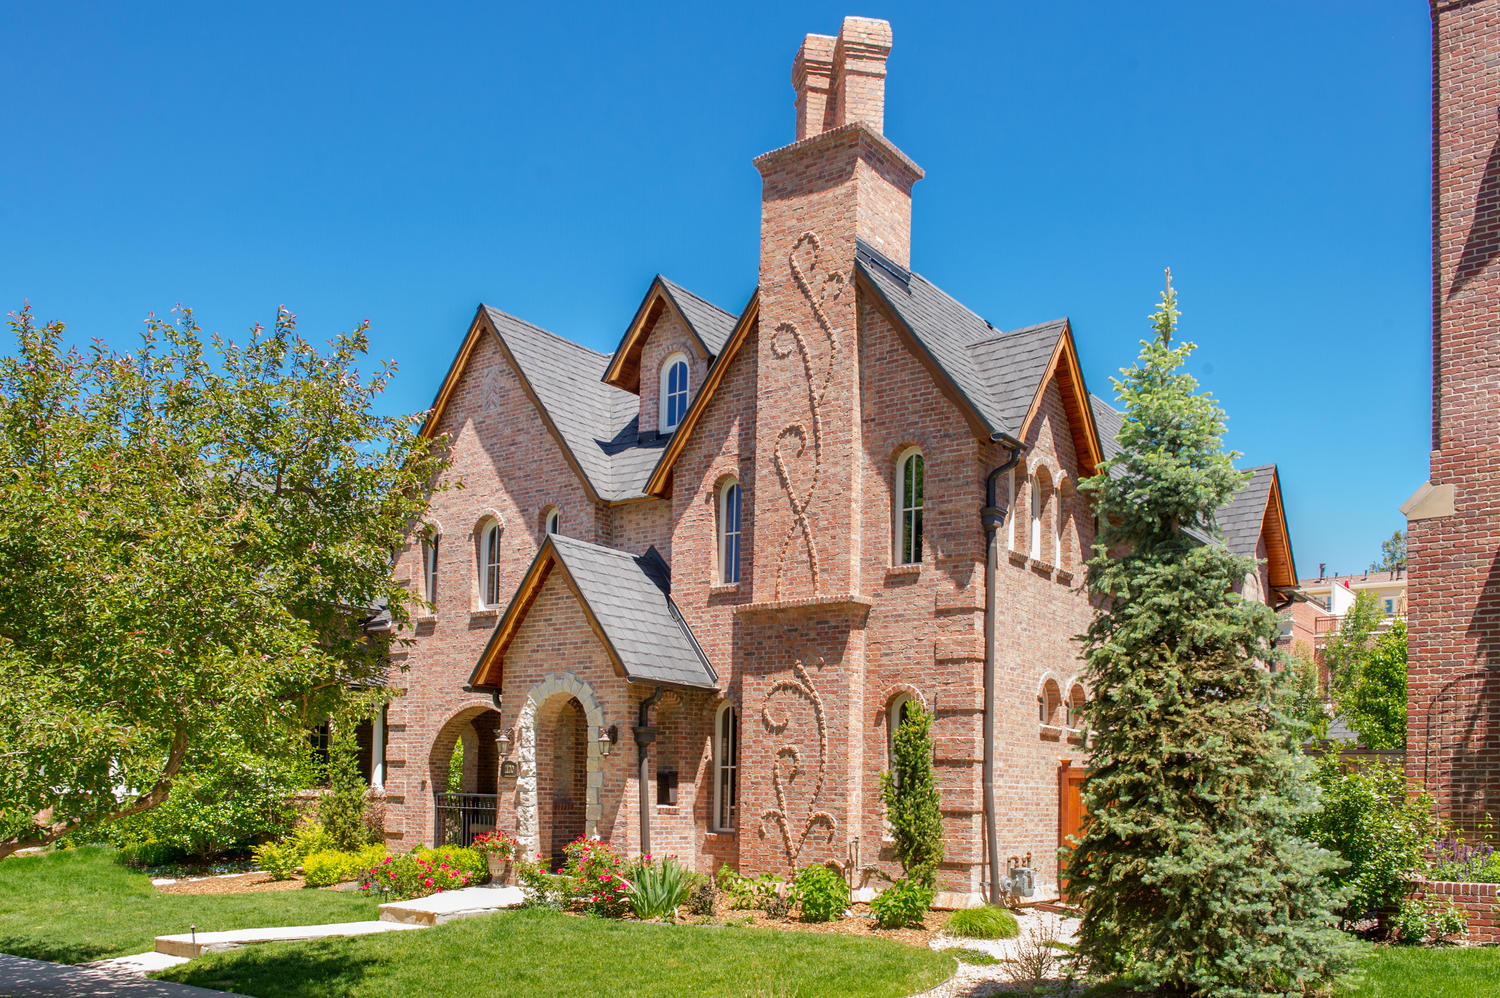 Villa per Vendita alle ore Custom-built Storybook English Tudor 1120 South High Street Washington Park, Denver, Colorado, 80210 Stati Uniti